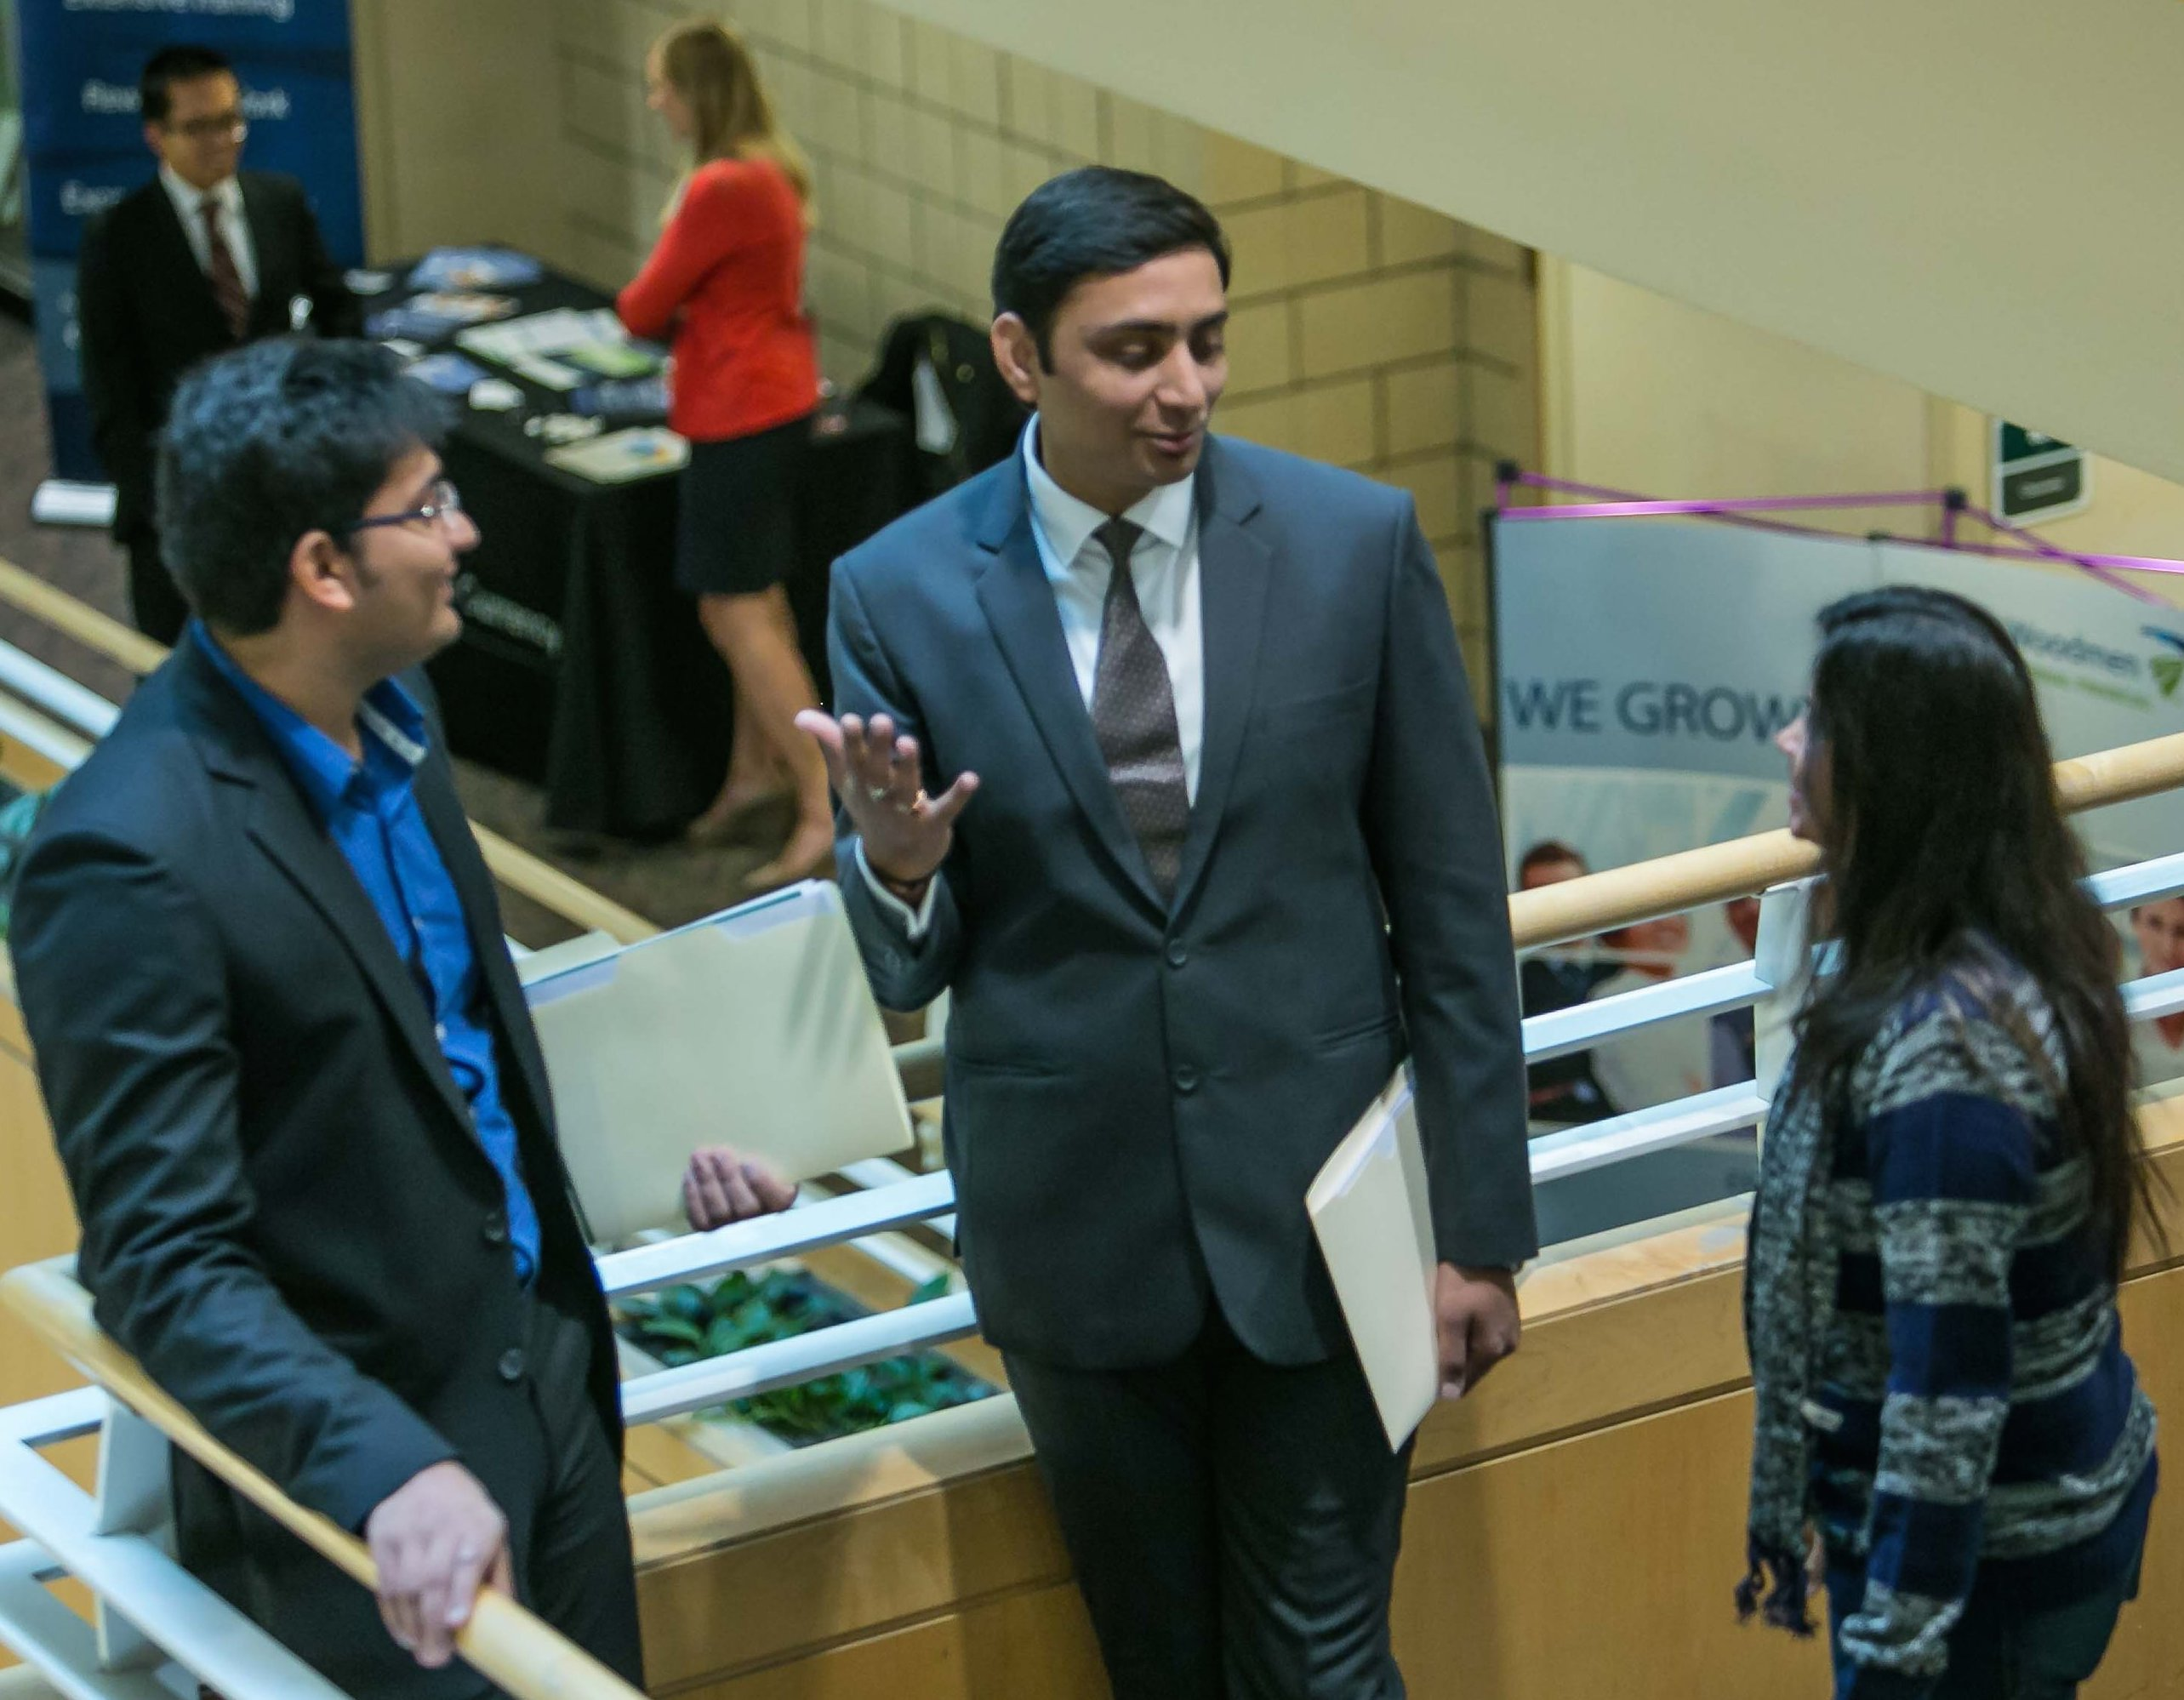 Students on stairwell at Biz Internship Co-op Expo 2016